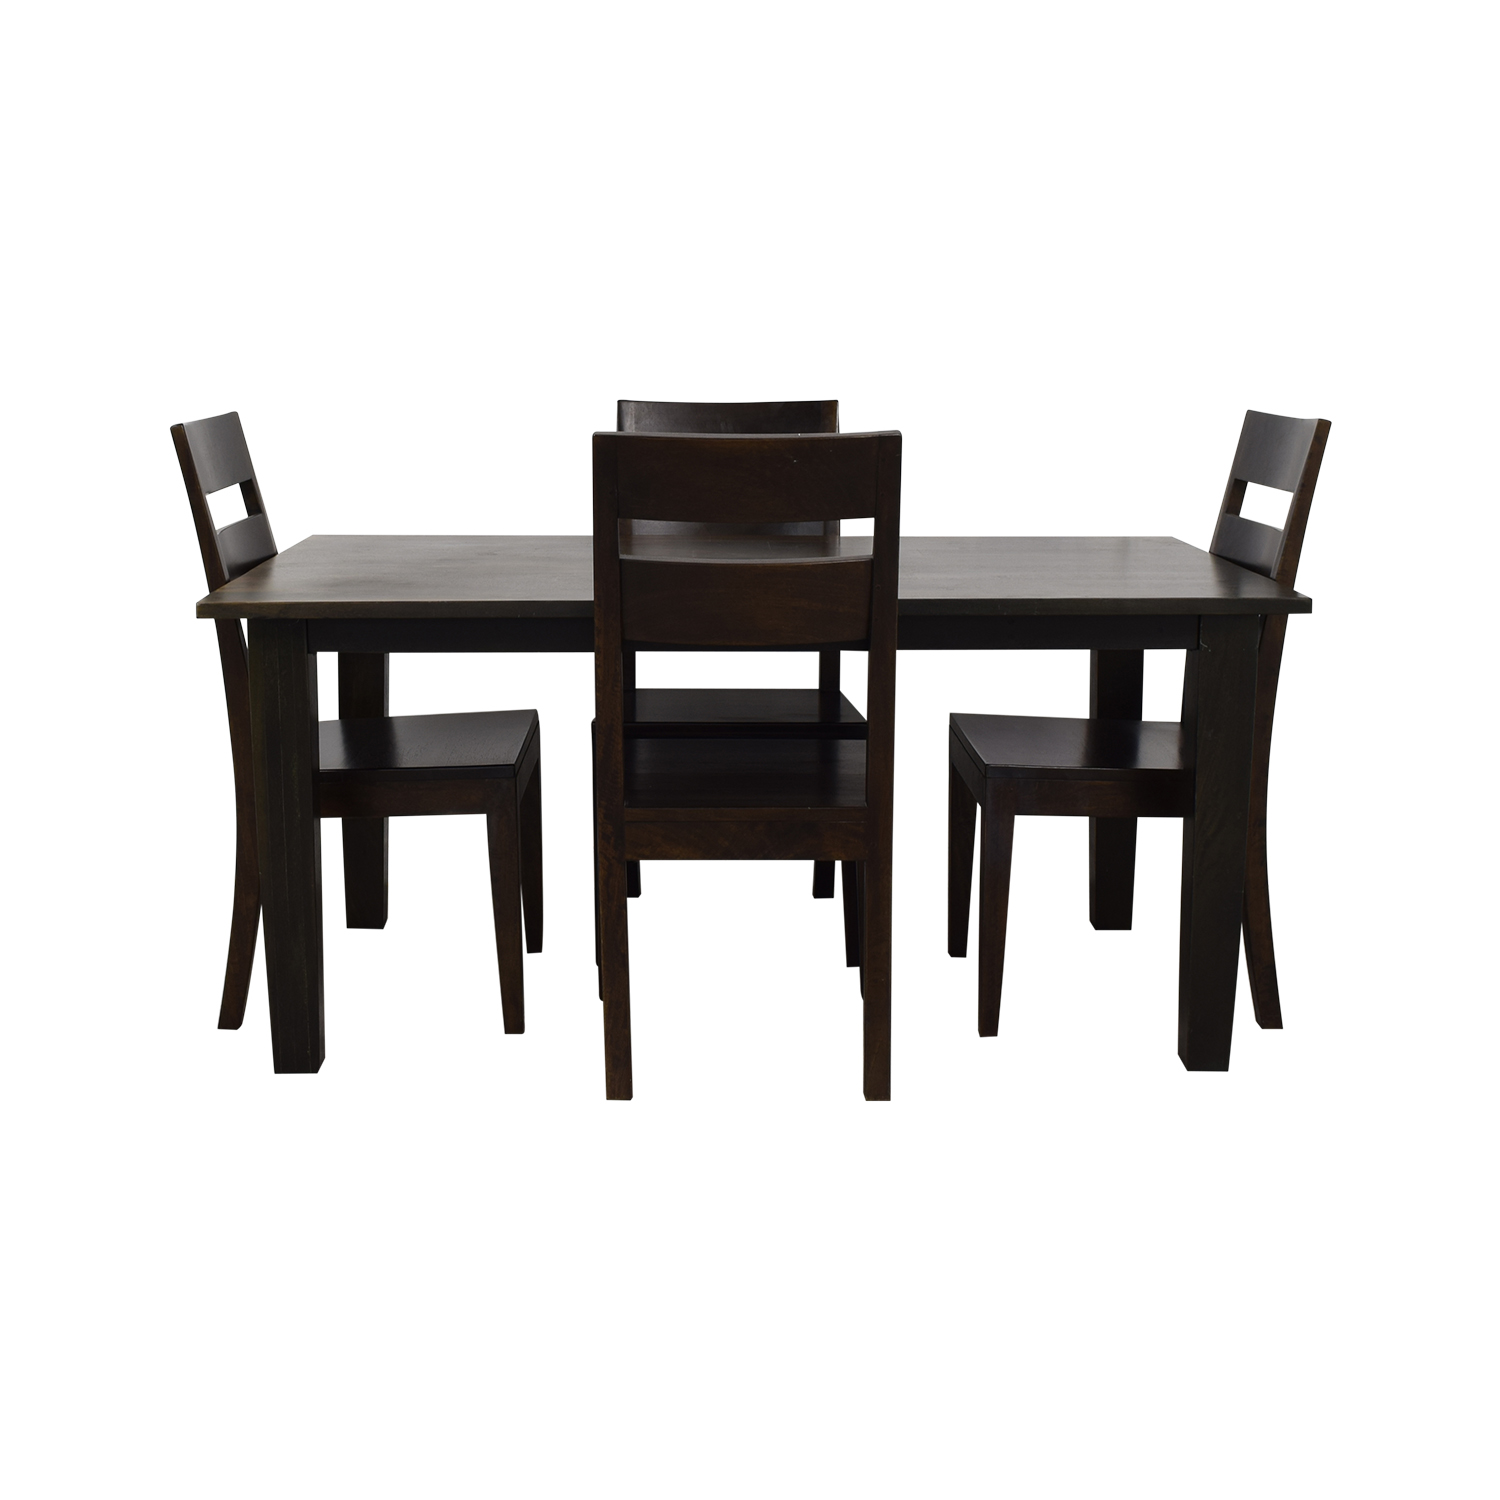 Crate & Barrel Crate & Barrel Dining Set on sale